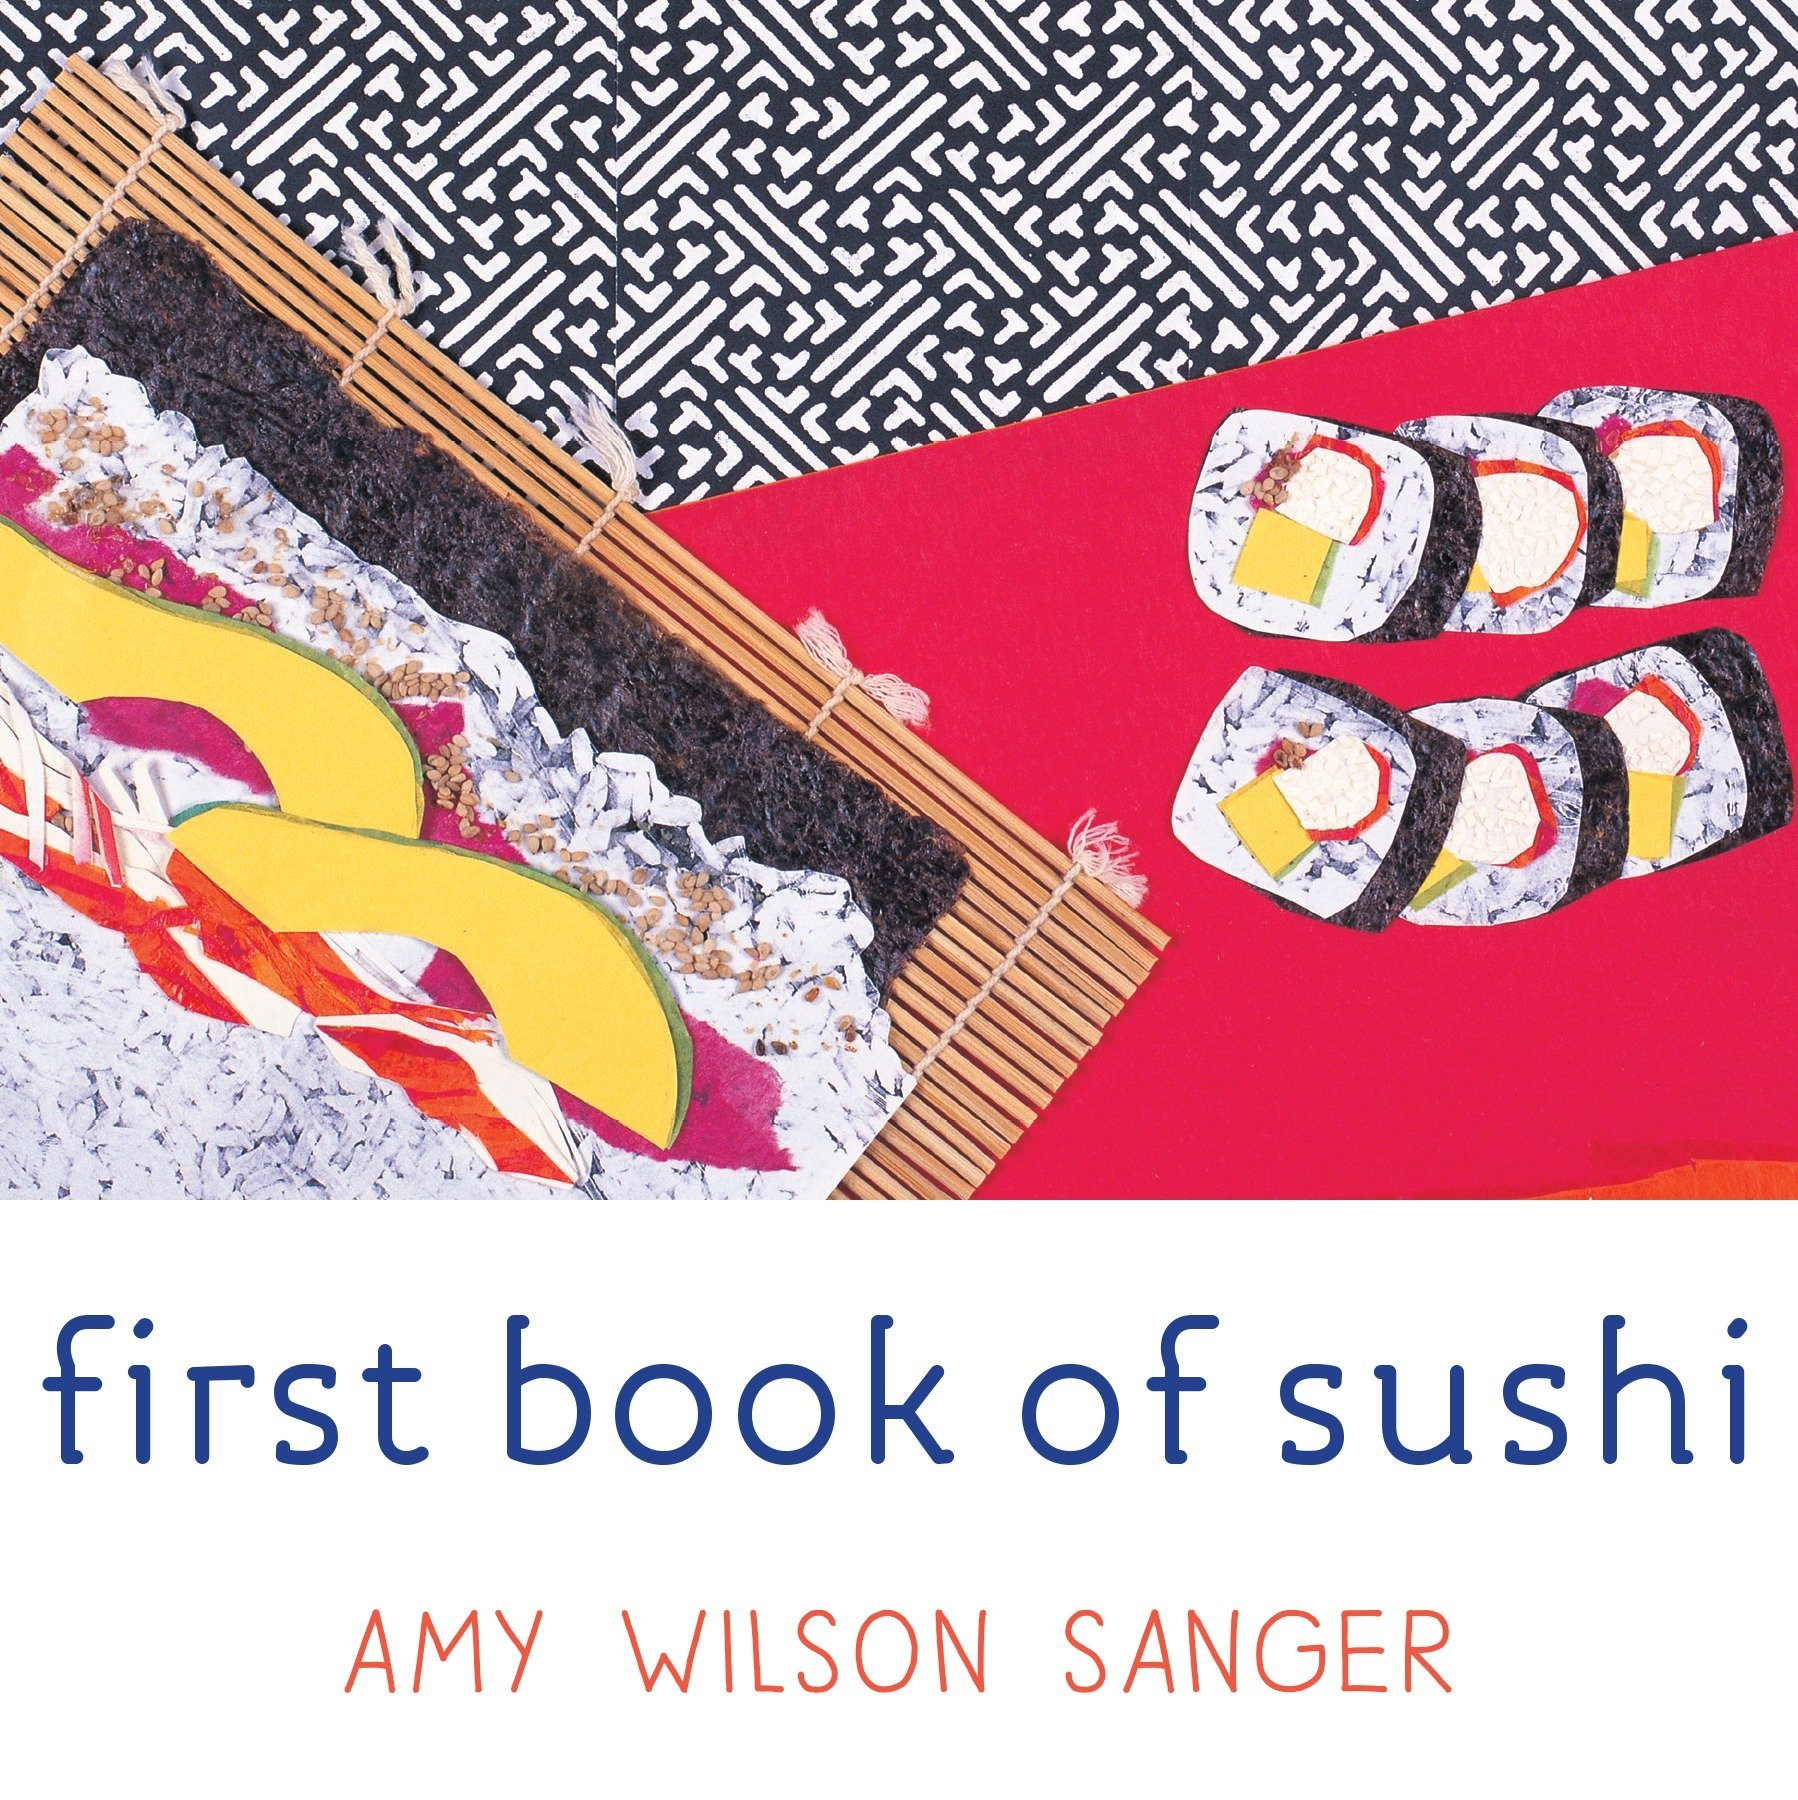 First Book of Sushi (World Snacks Series) Board book – June 15, 2001 Amy Wilson Sanger Knopf Books for Young Readers 1582460507 Cooking & Food